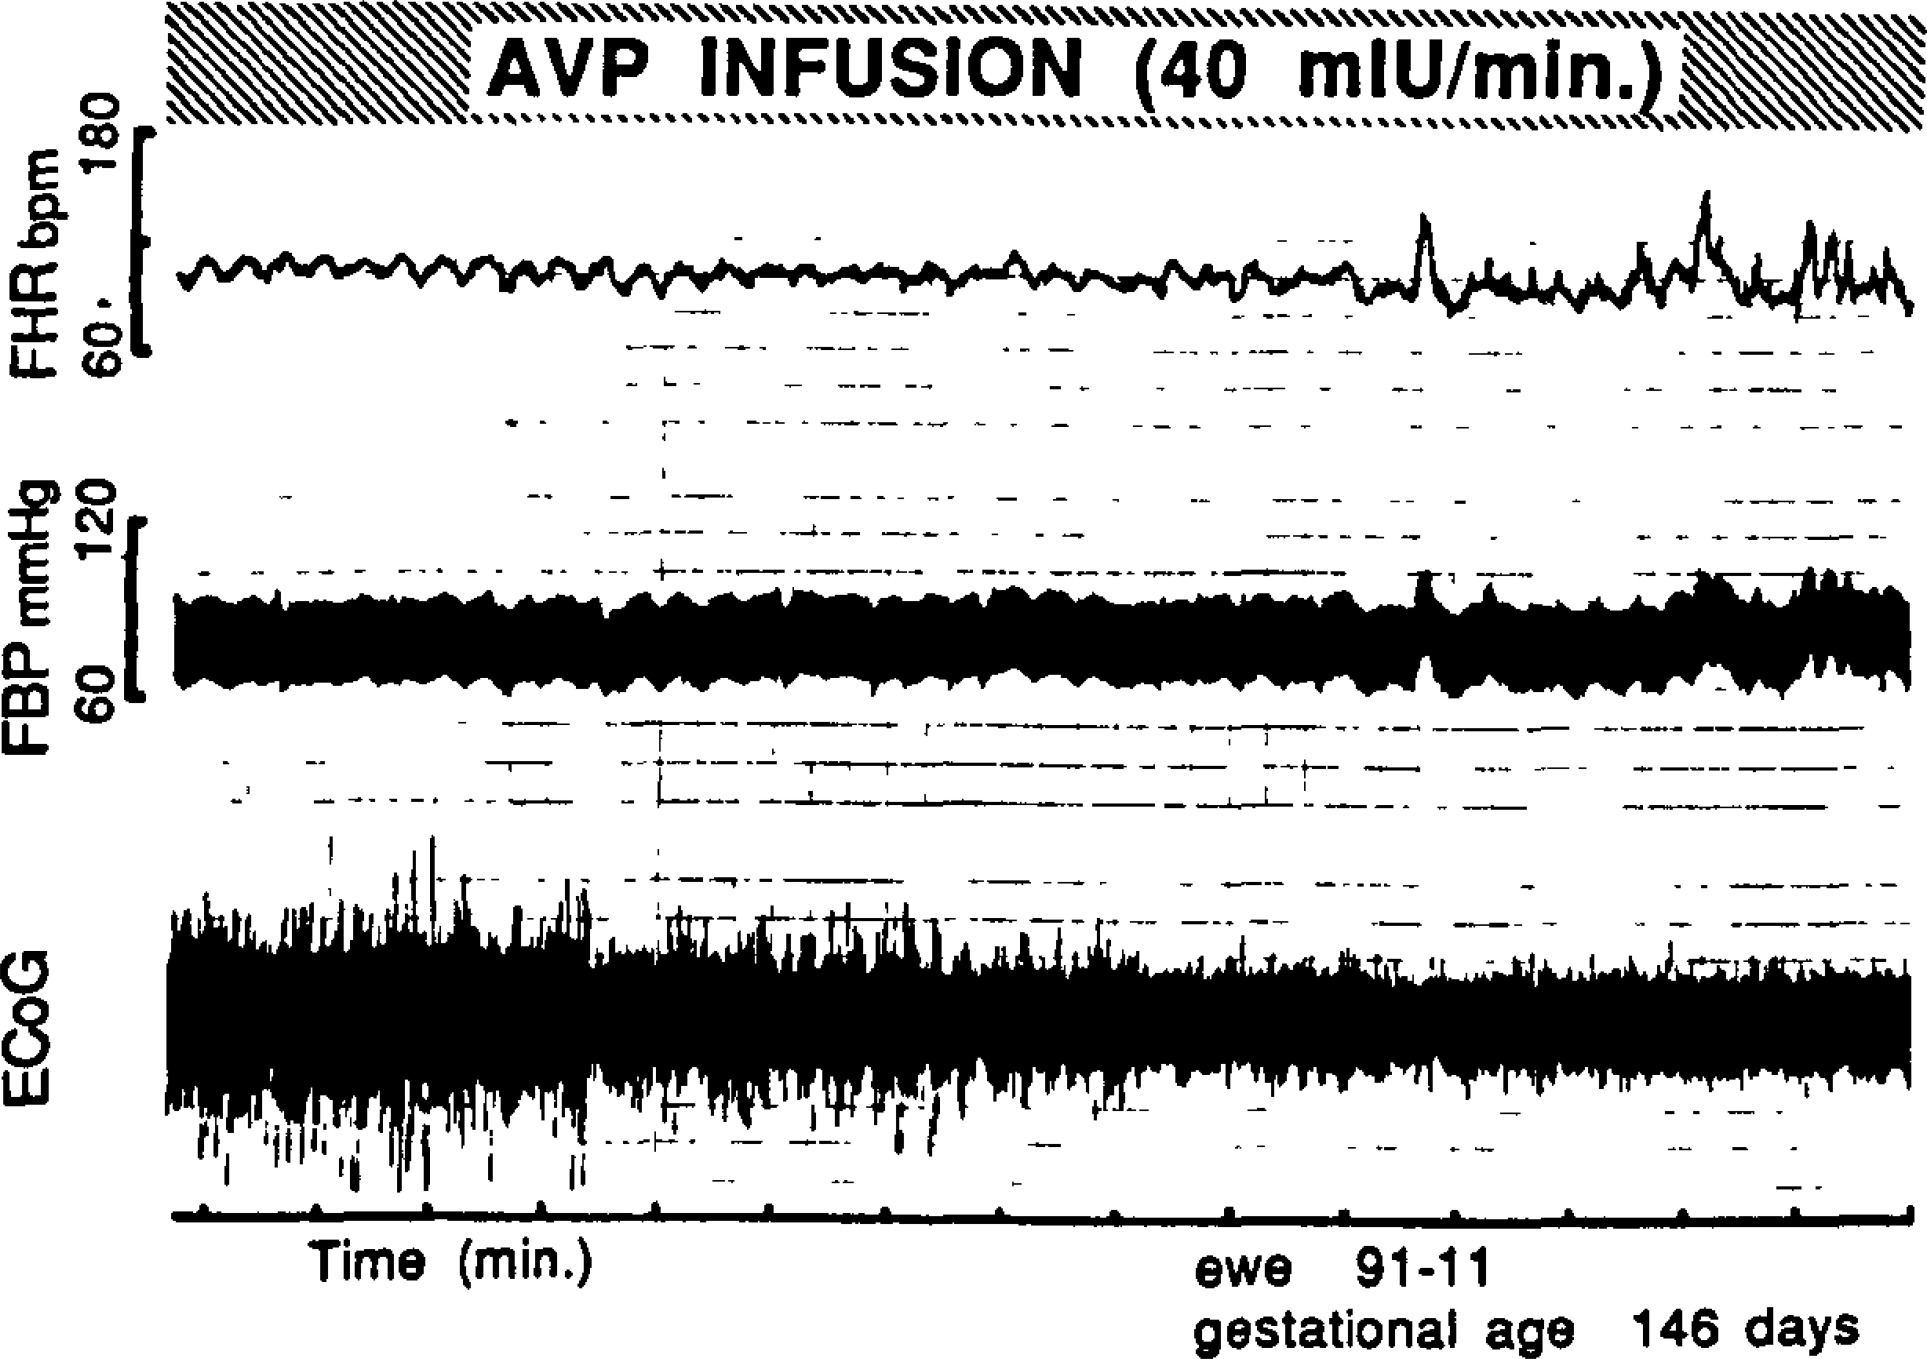 Experimentally induced intermittent sinusoidal heart rate